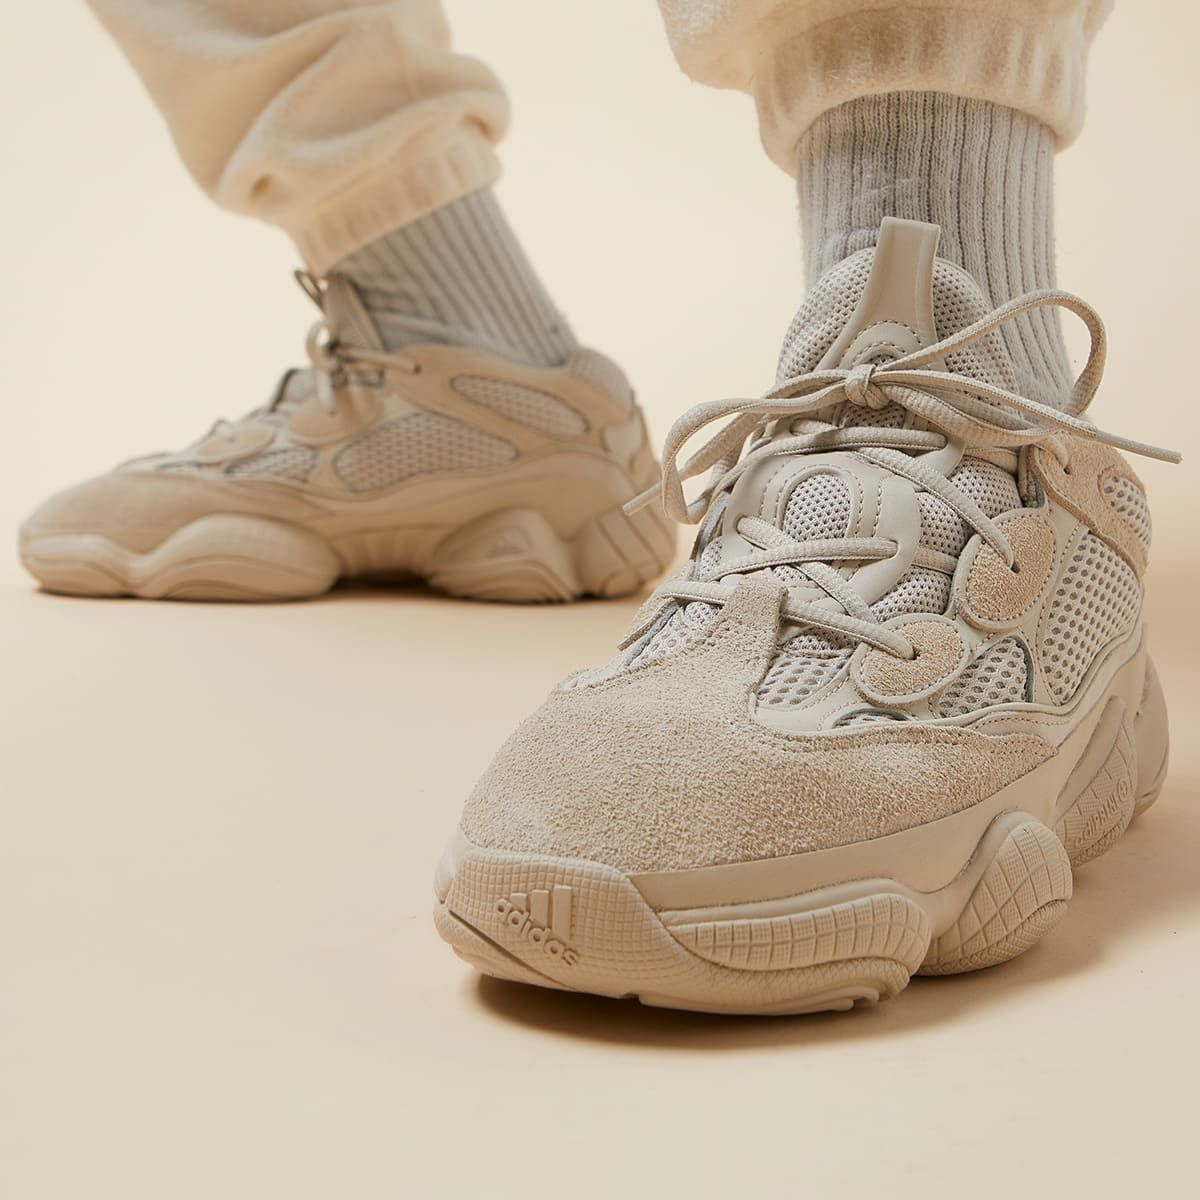 buy online 25ac6 23cfd YEEZY 500 'Blush' DB2908 | fashion in 2019 | Yeezy shoes ...